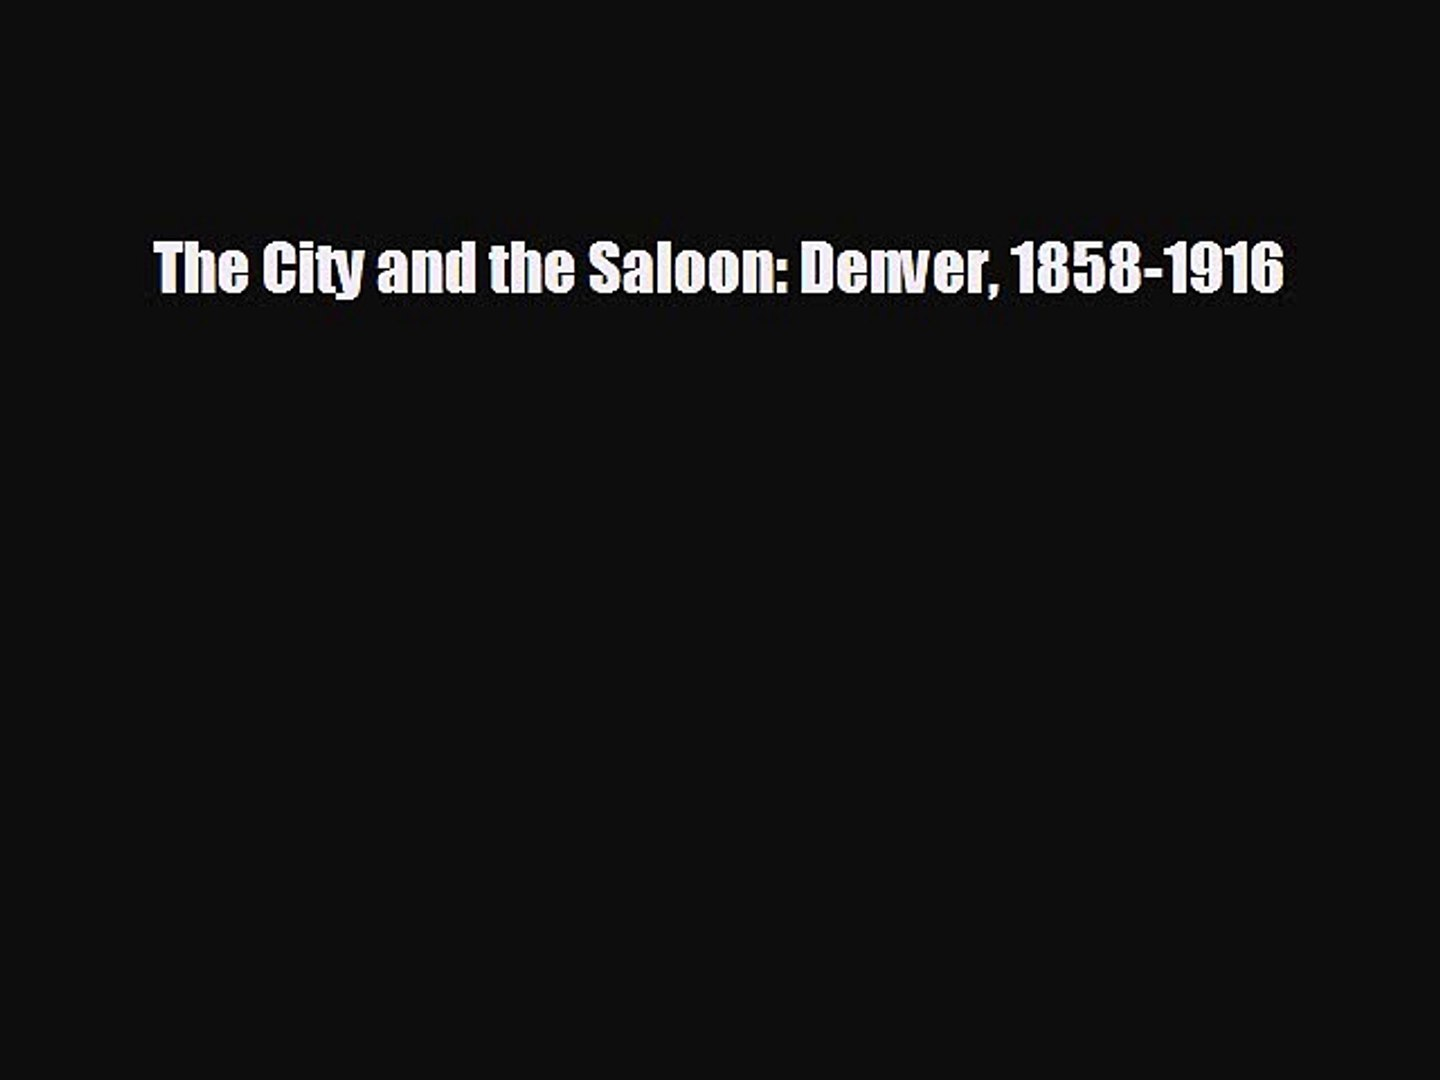 Popular book The City and the Saloon: Denver 1858-1916